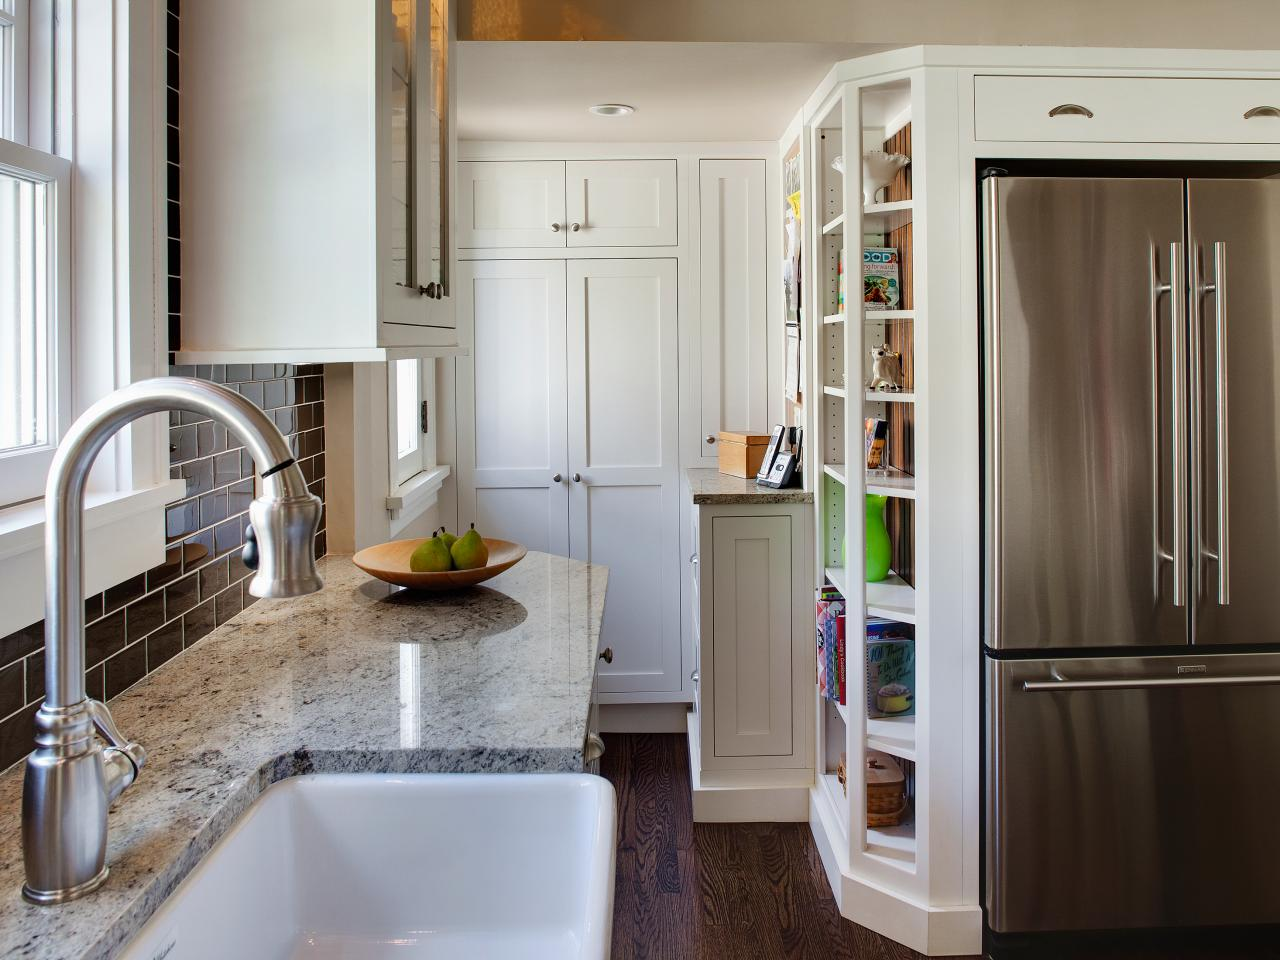 Small Kitchens: 8 Design Ideas To Try. See All Photos